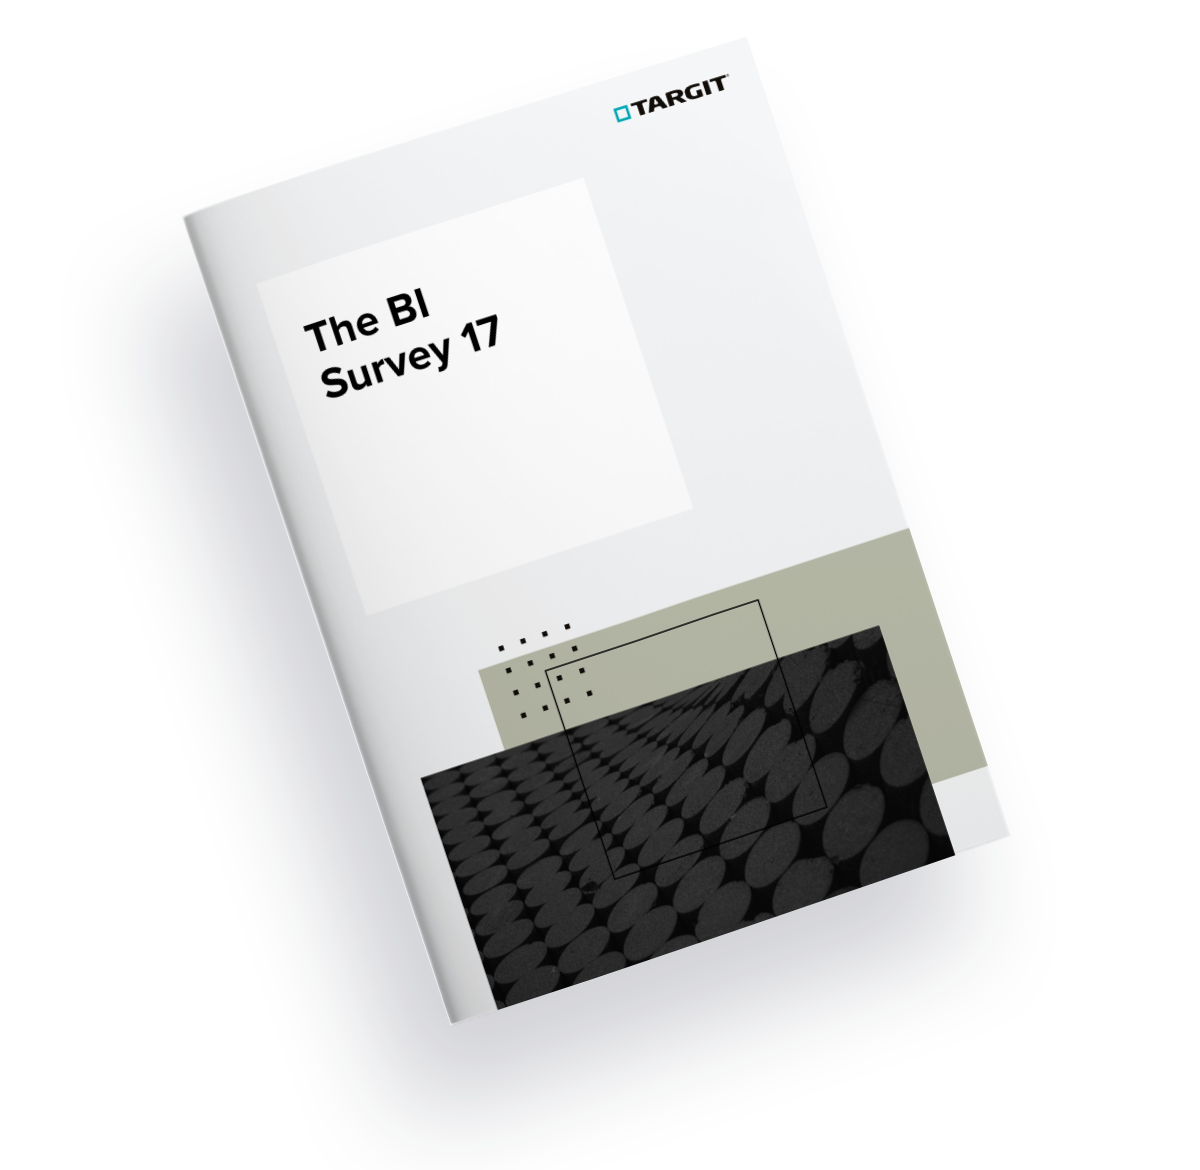 The BI Survey 17 cover